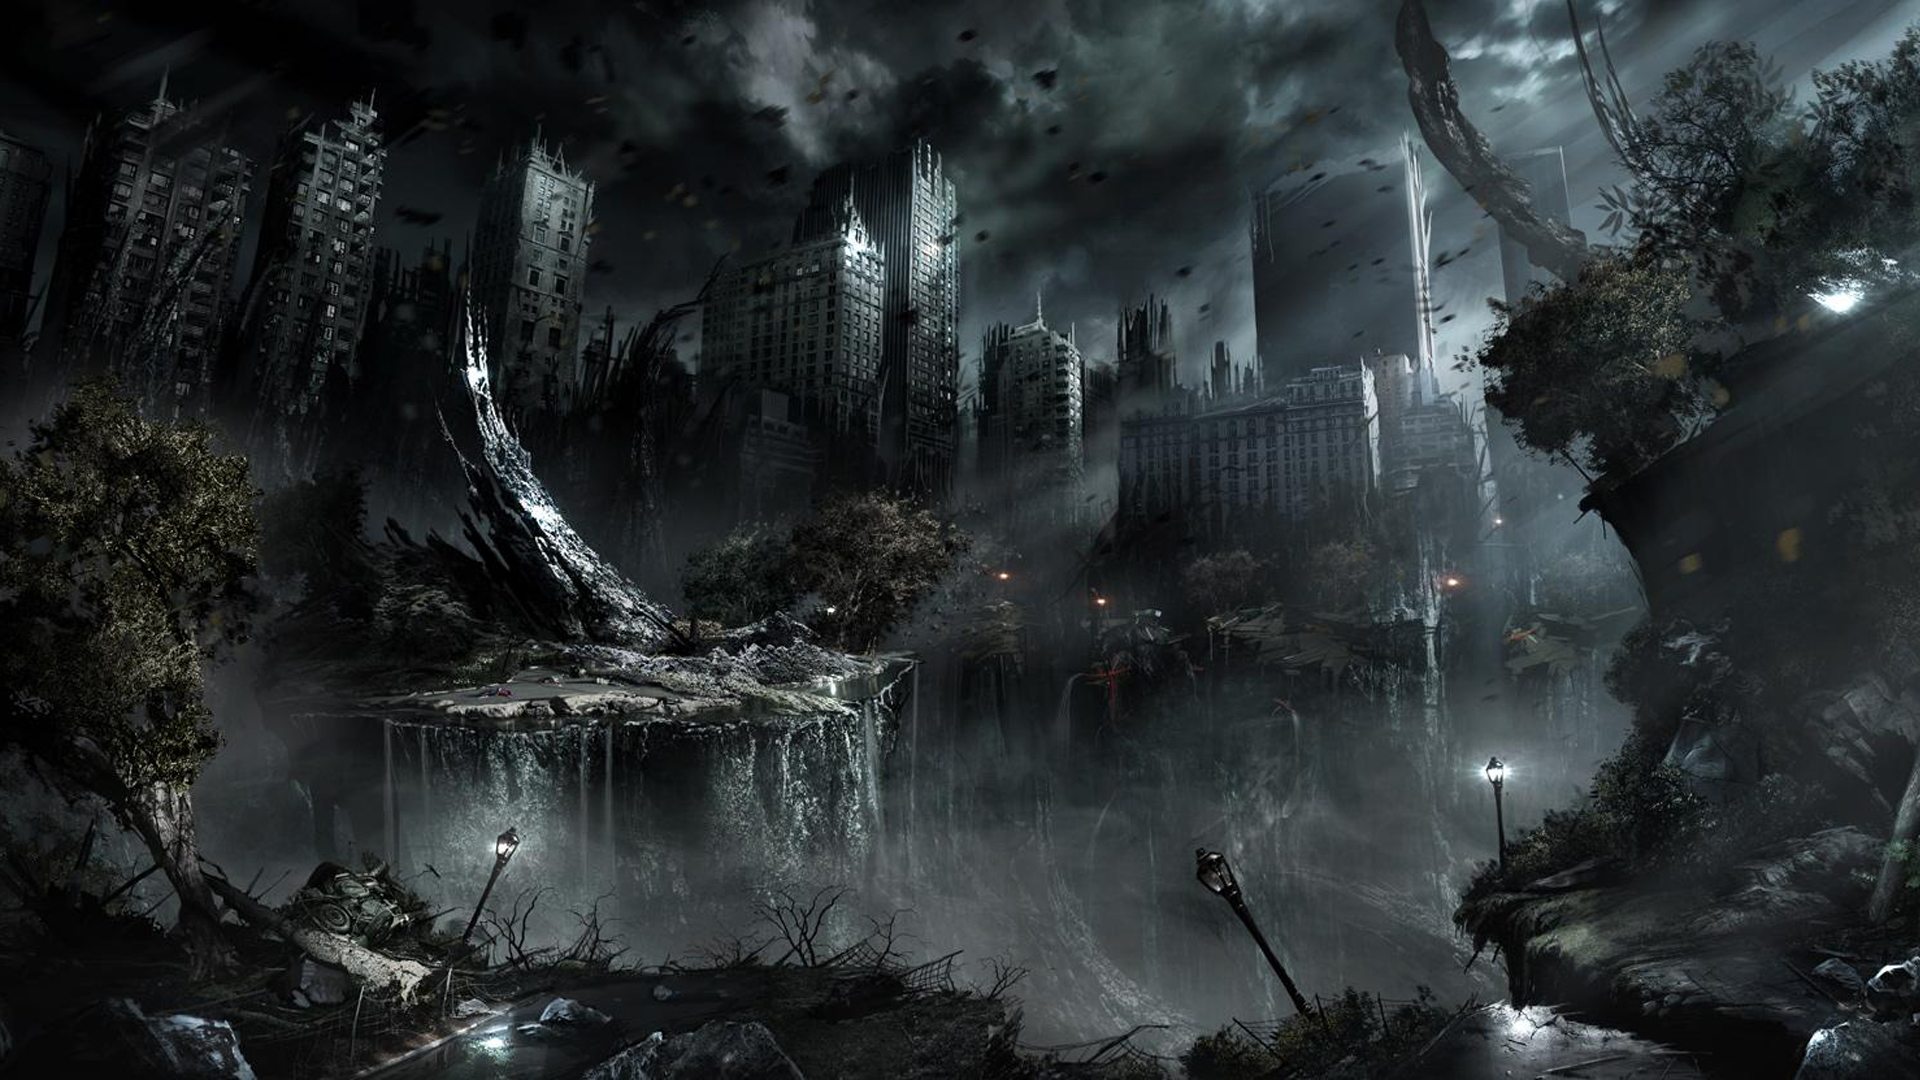 Id 860734 Wallpaper Abyss: 317 Post Apocalyptic HD Wallpapers